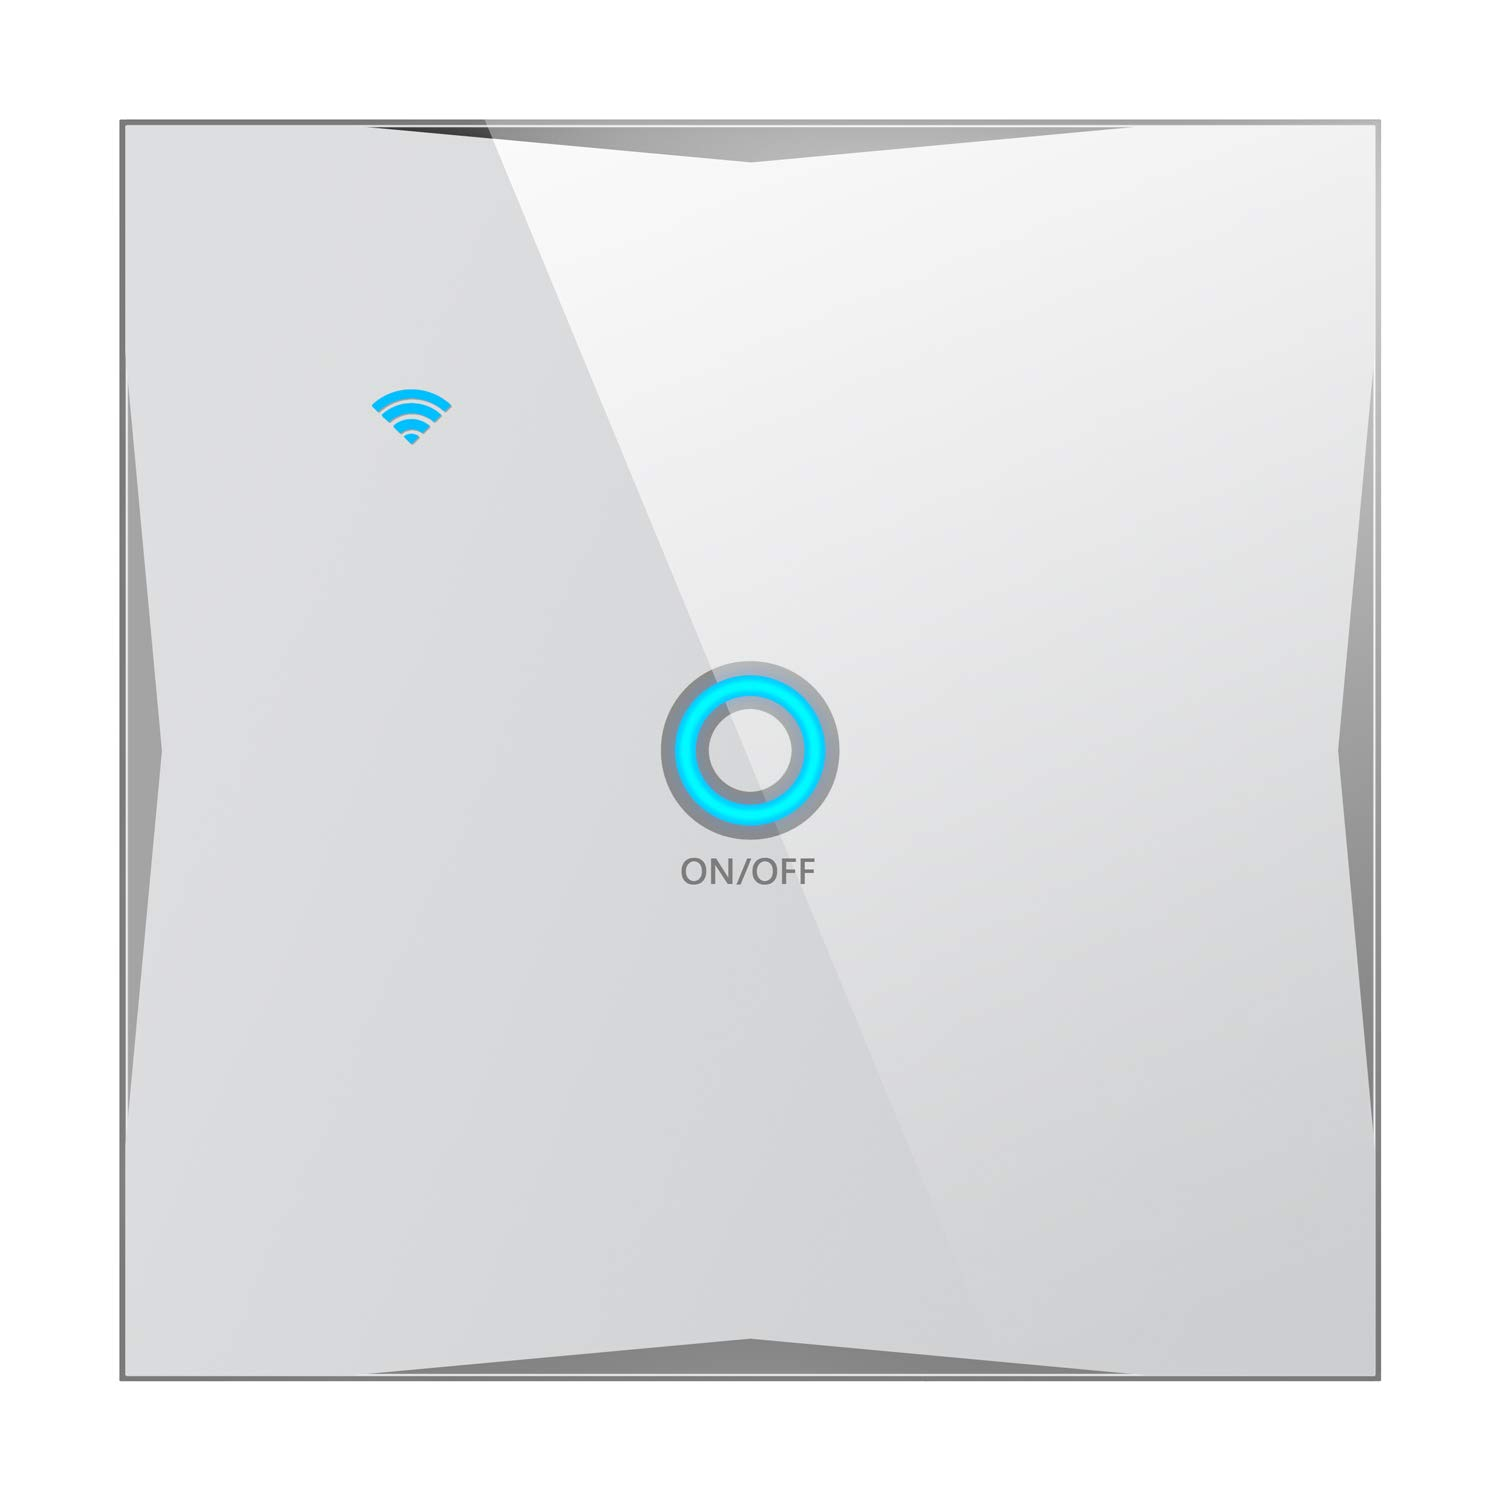 WiFi Smart Wall Light Switch, Compatible with Amazon Alexa, Google Home,  IFTTT, App and Voice Control, Touch Tempered Glass Panel, No hub Required